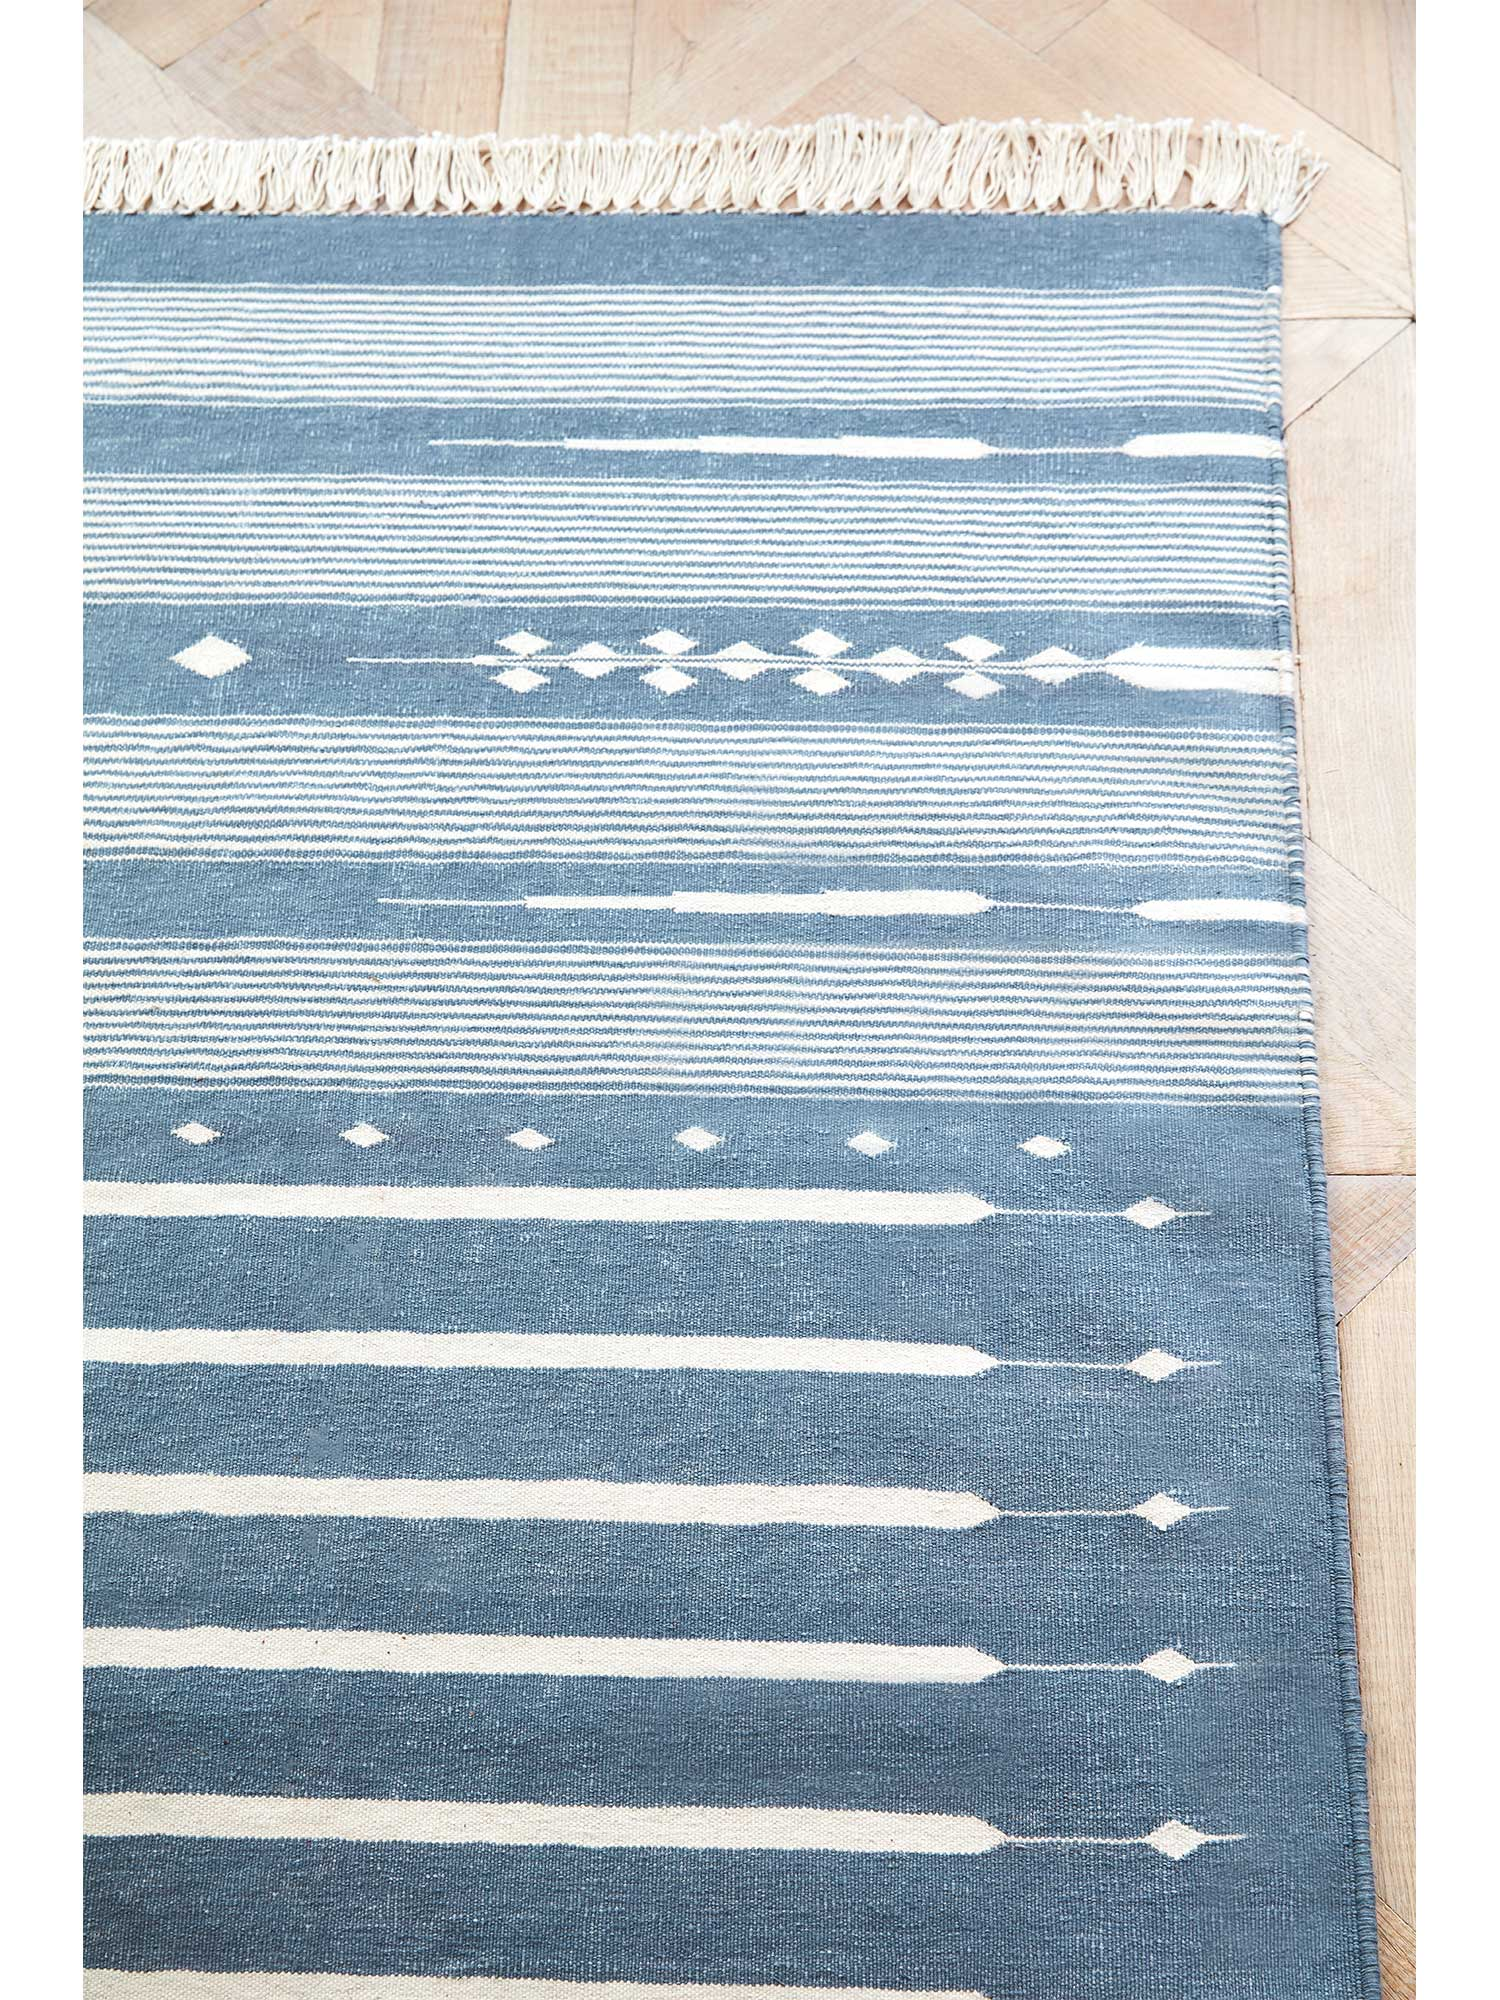 Blue And White Dhurrie Rug Sophie Conran